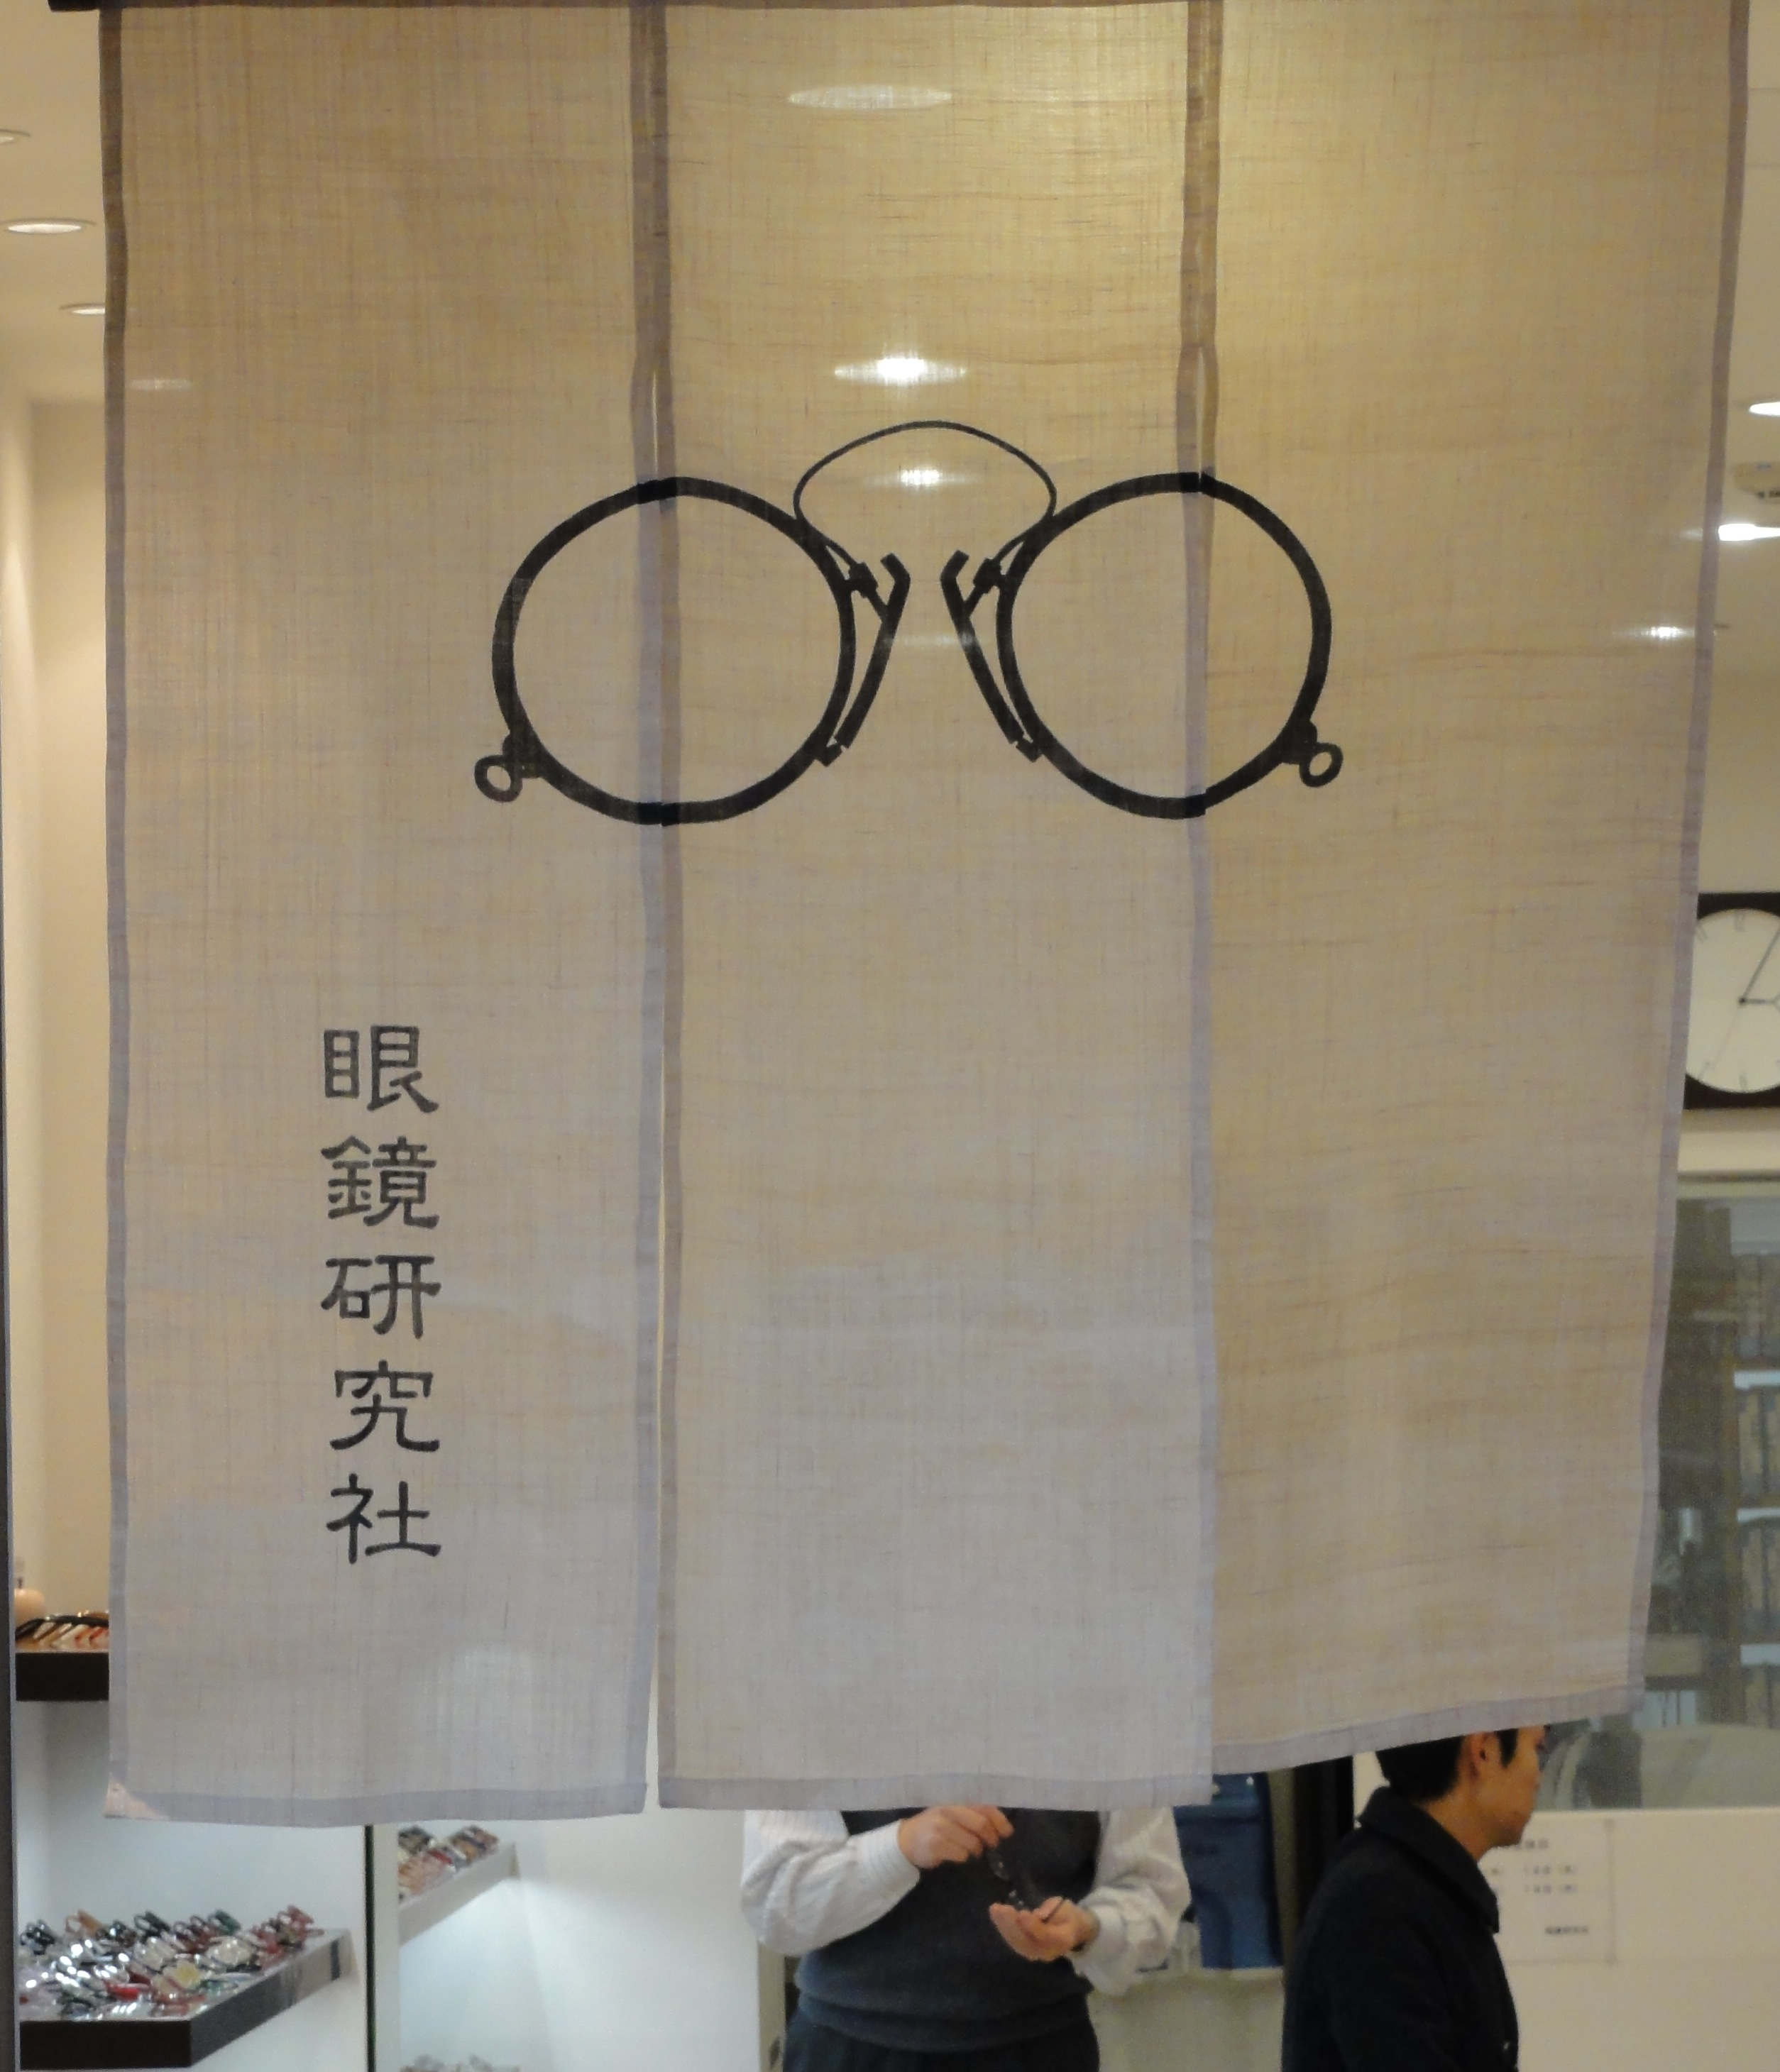 learn-kanji-Japanese-sign-eyeglasses-261